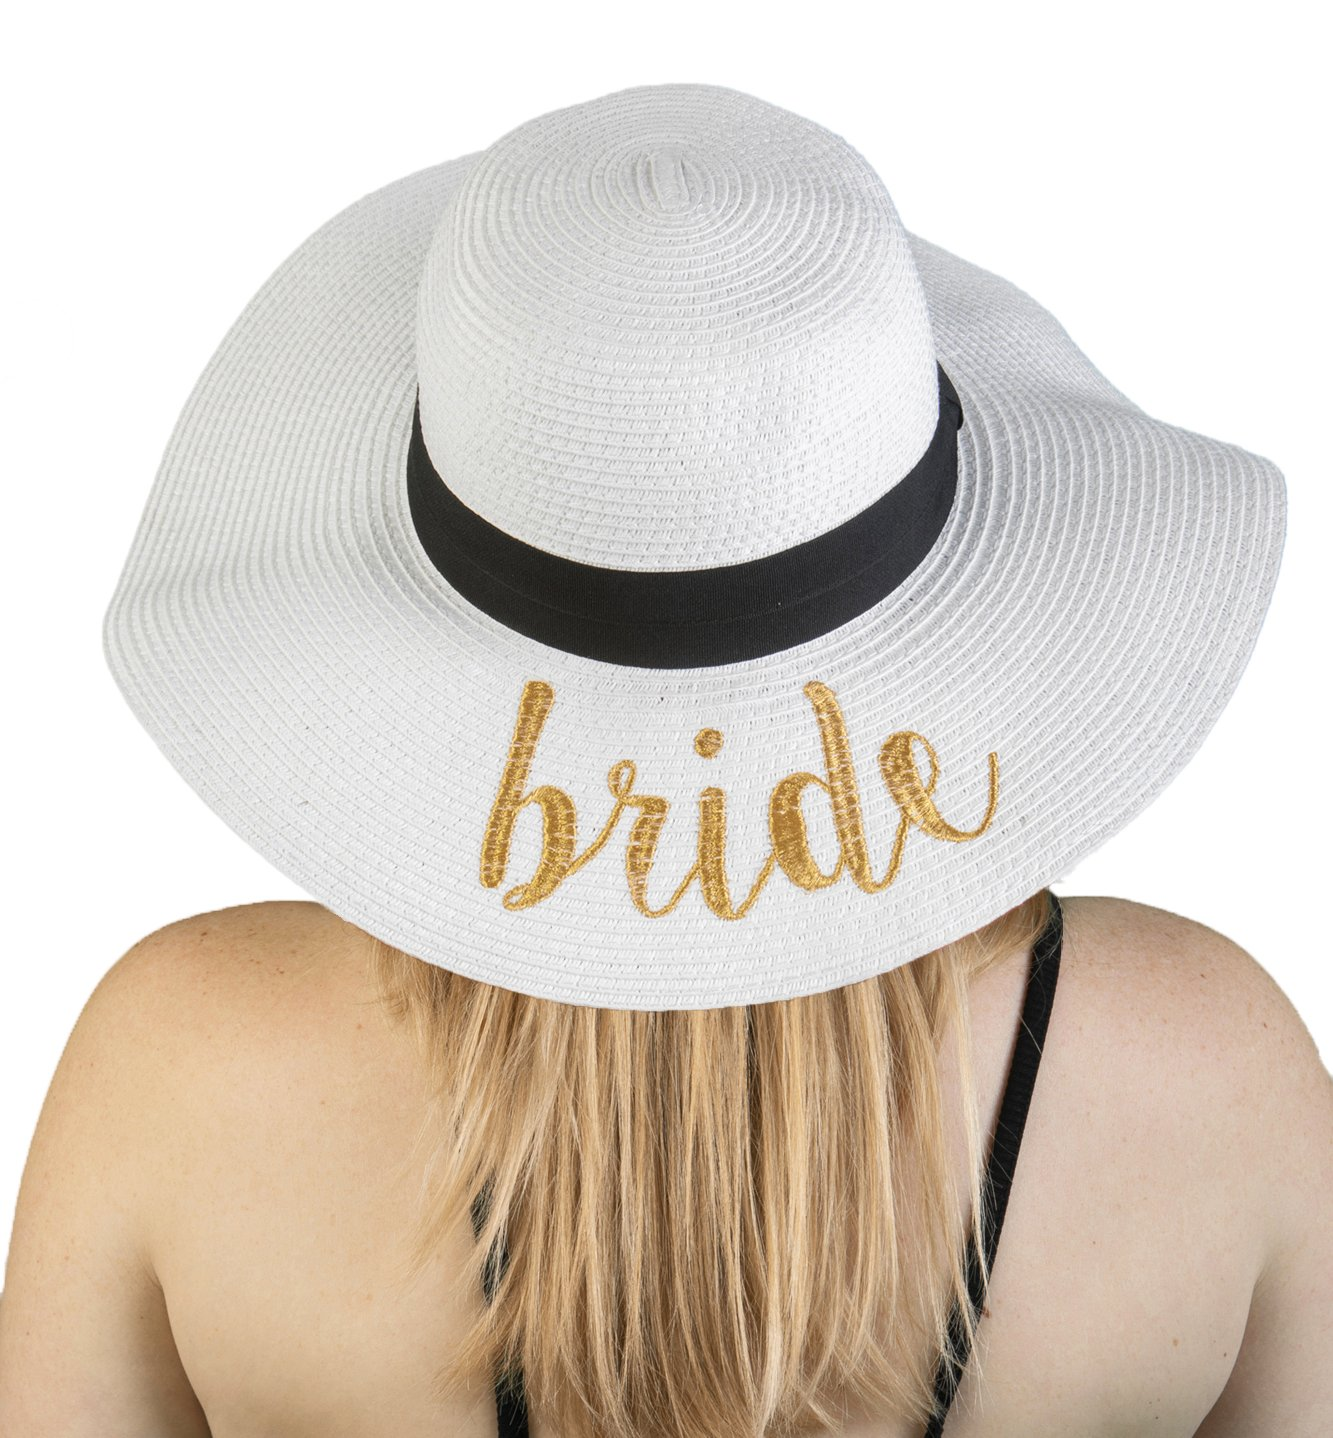 H-2017-B-WG Embroidered Bridal Sun Hat - Bride (White/Gold) by Funky Junque